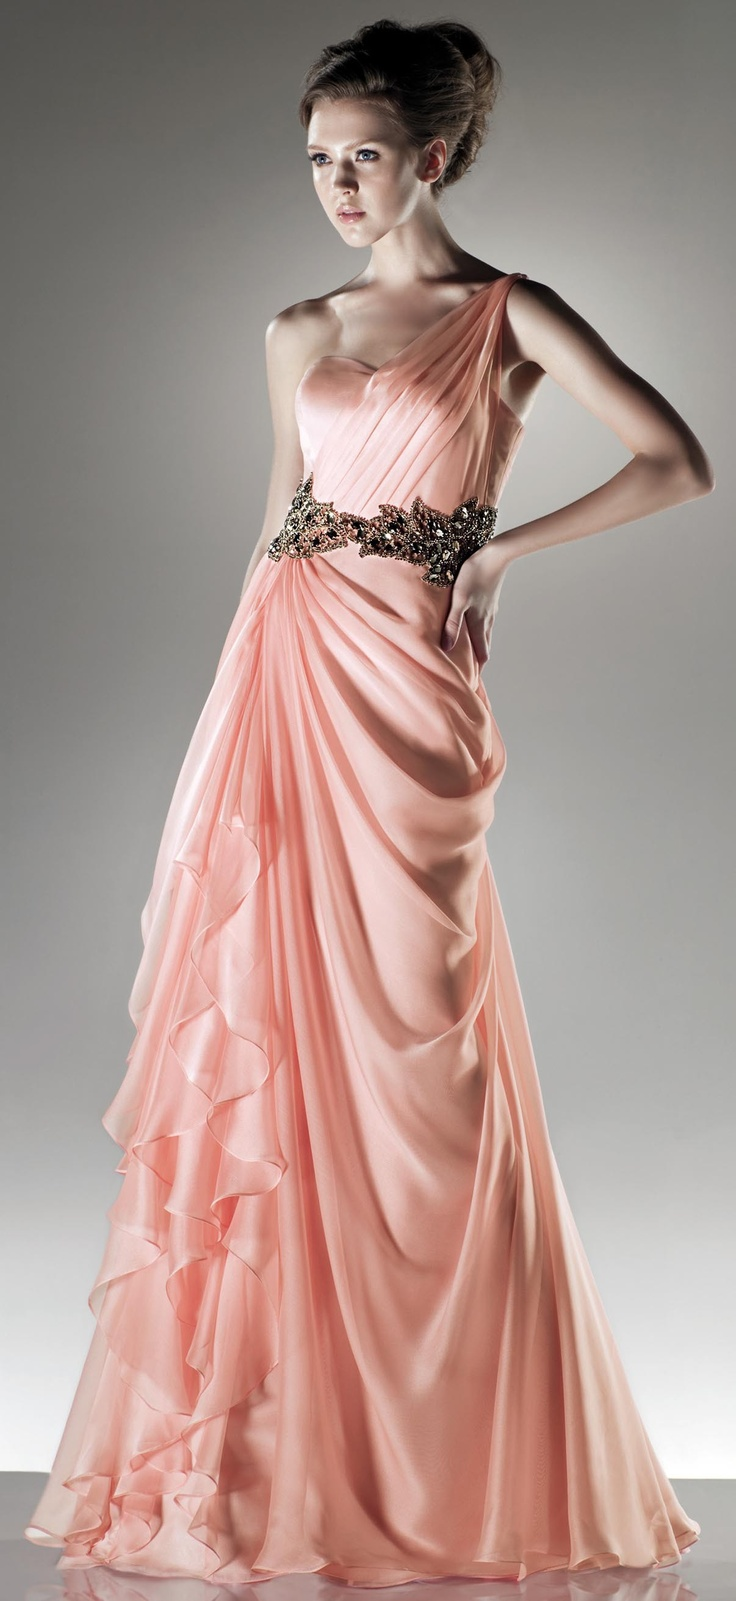 Elegant one shoulder chiffon gown $269.00